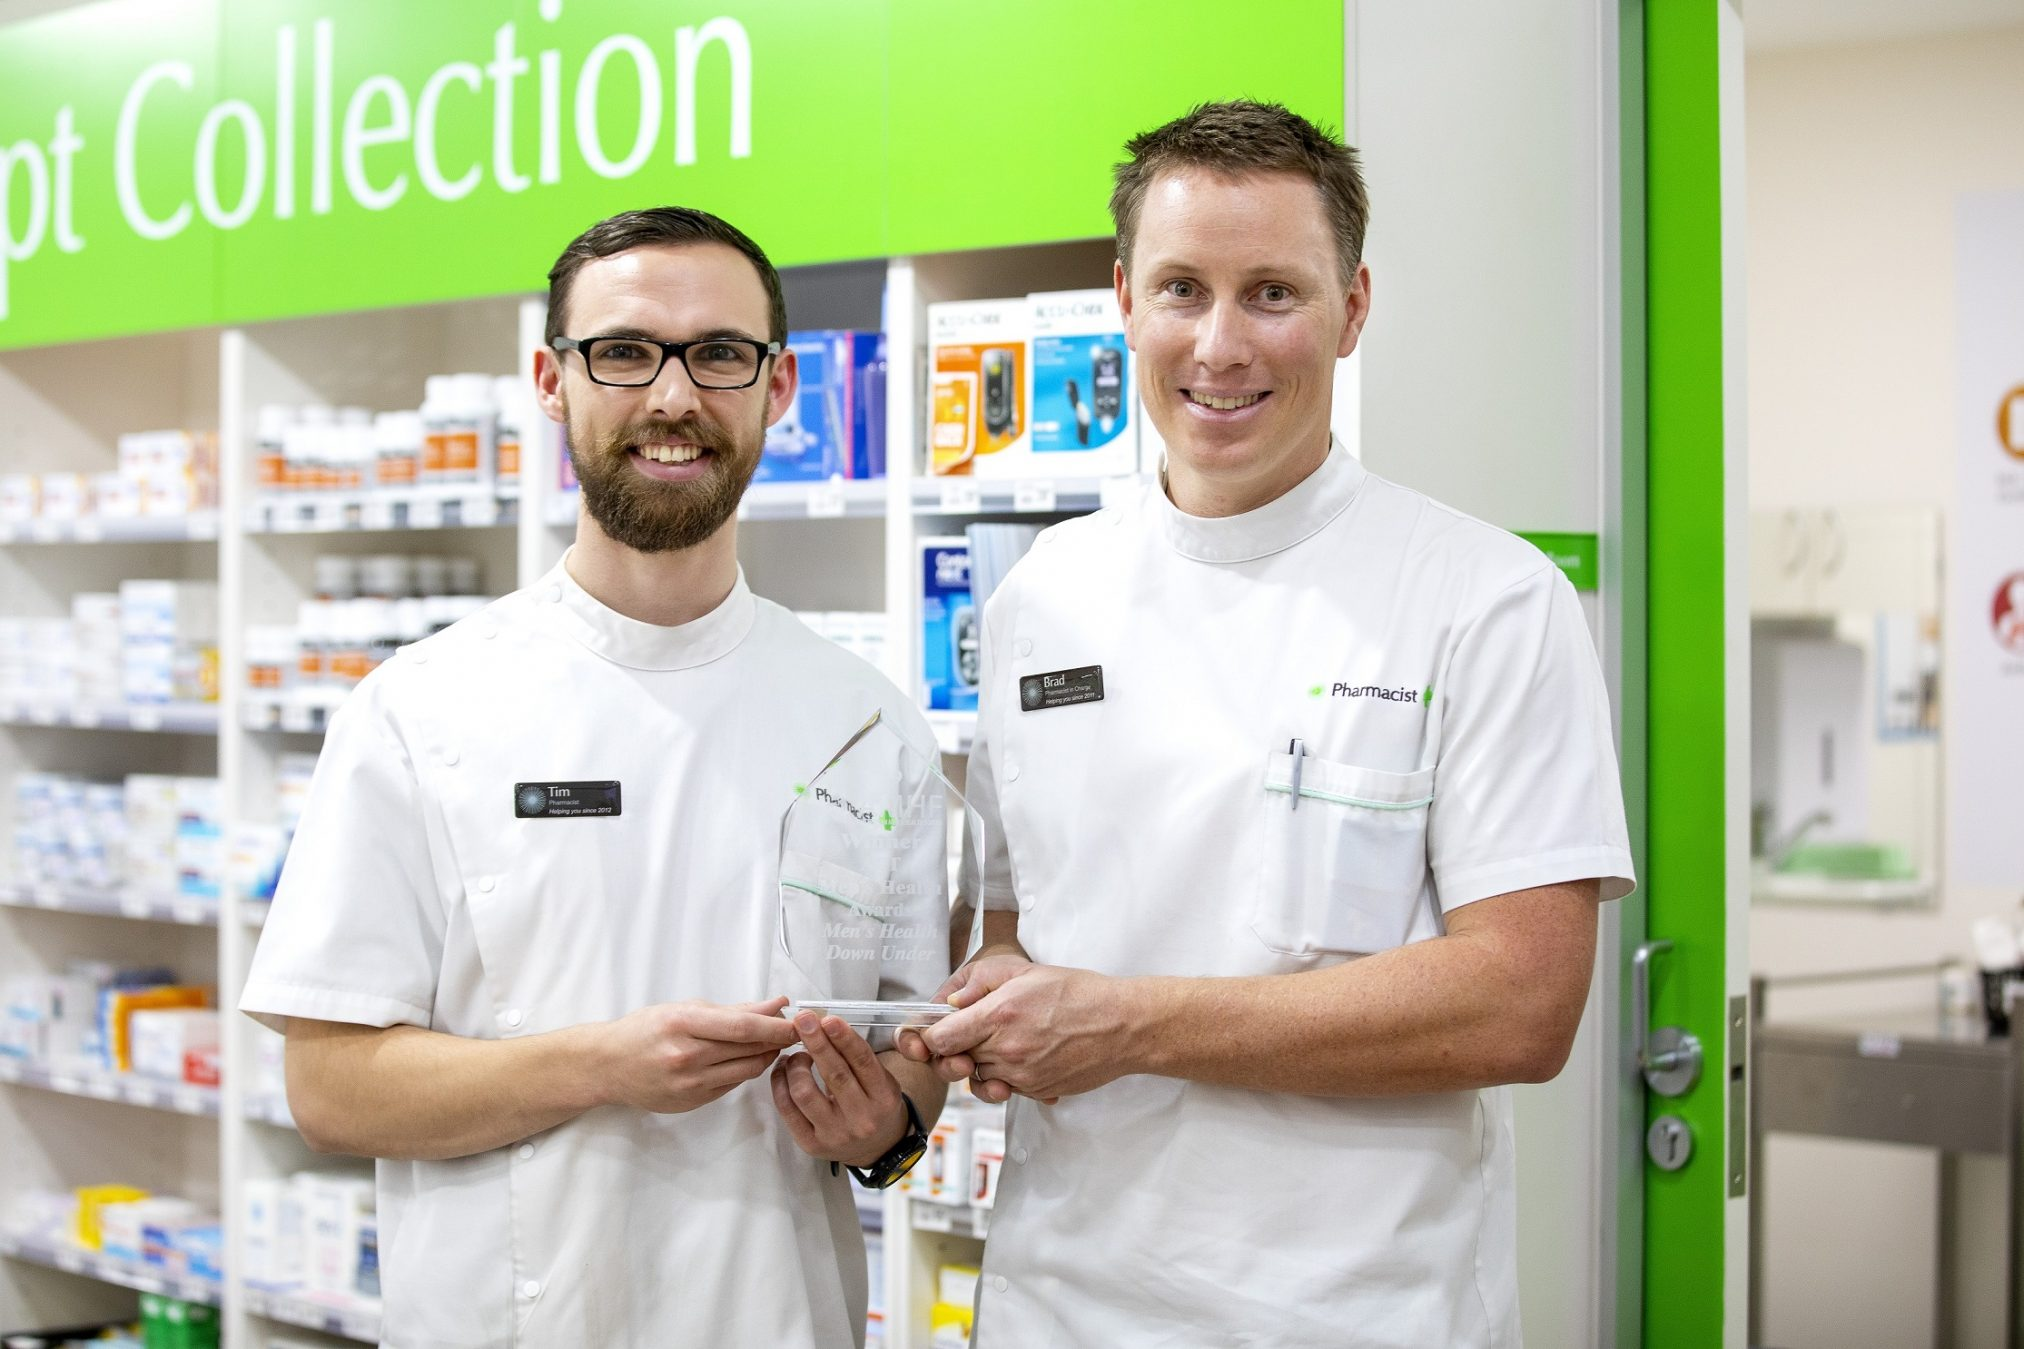 Tim Stewart and Bradley Butt from Men's Health Down Under, Cooleman Court Pharmacy, ACT. Photo credit: Peter Dawn - Fifth Lane Photography Weston.